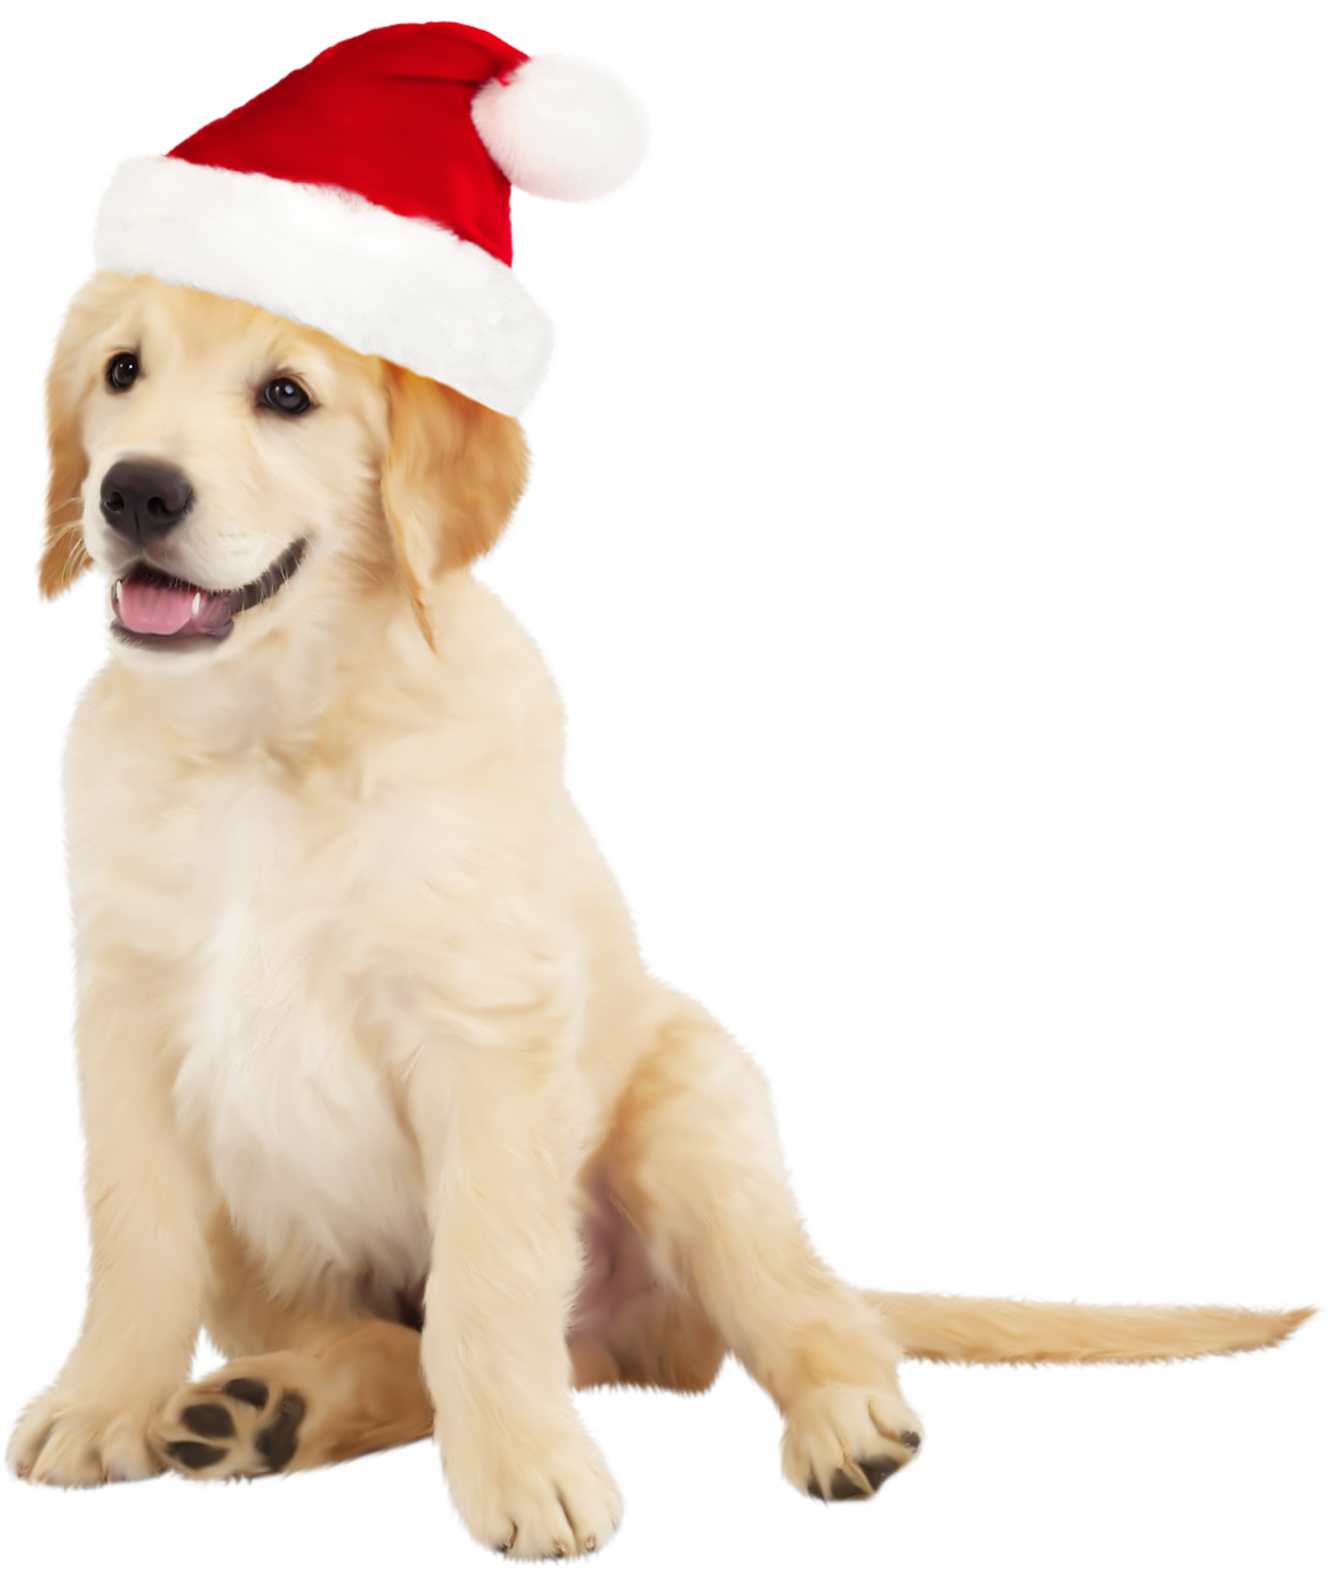 Cute dog png. With santa hat clipart